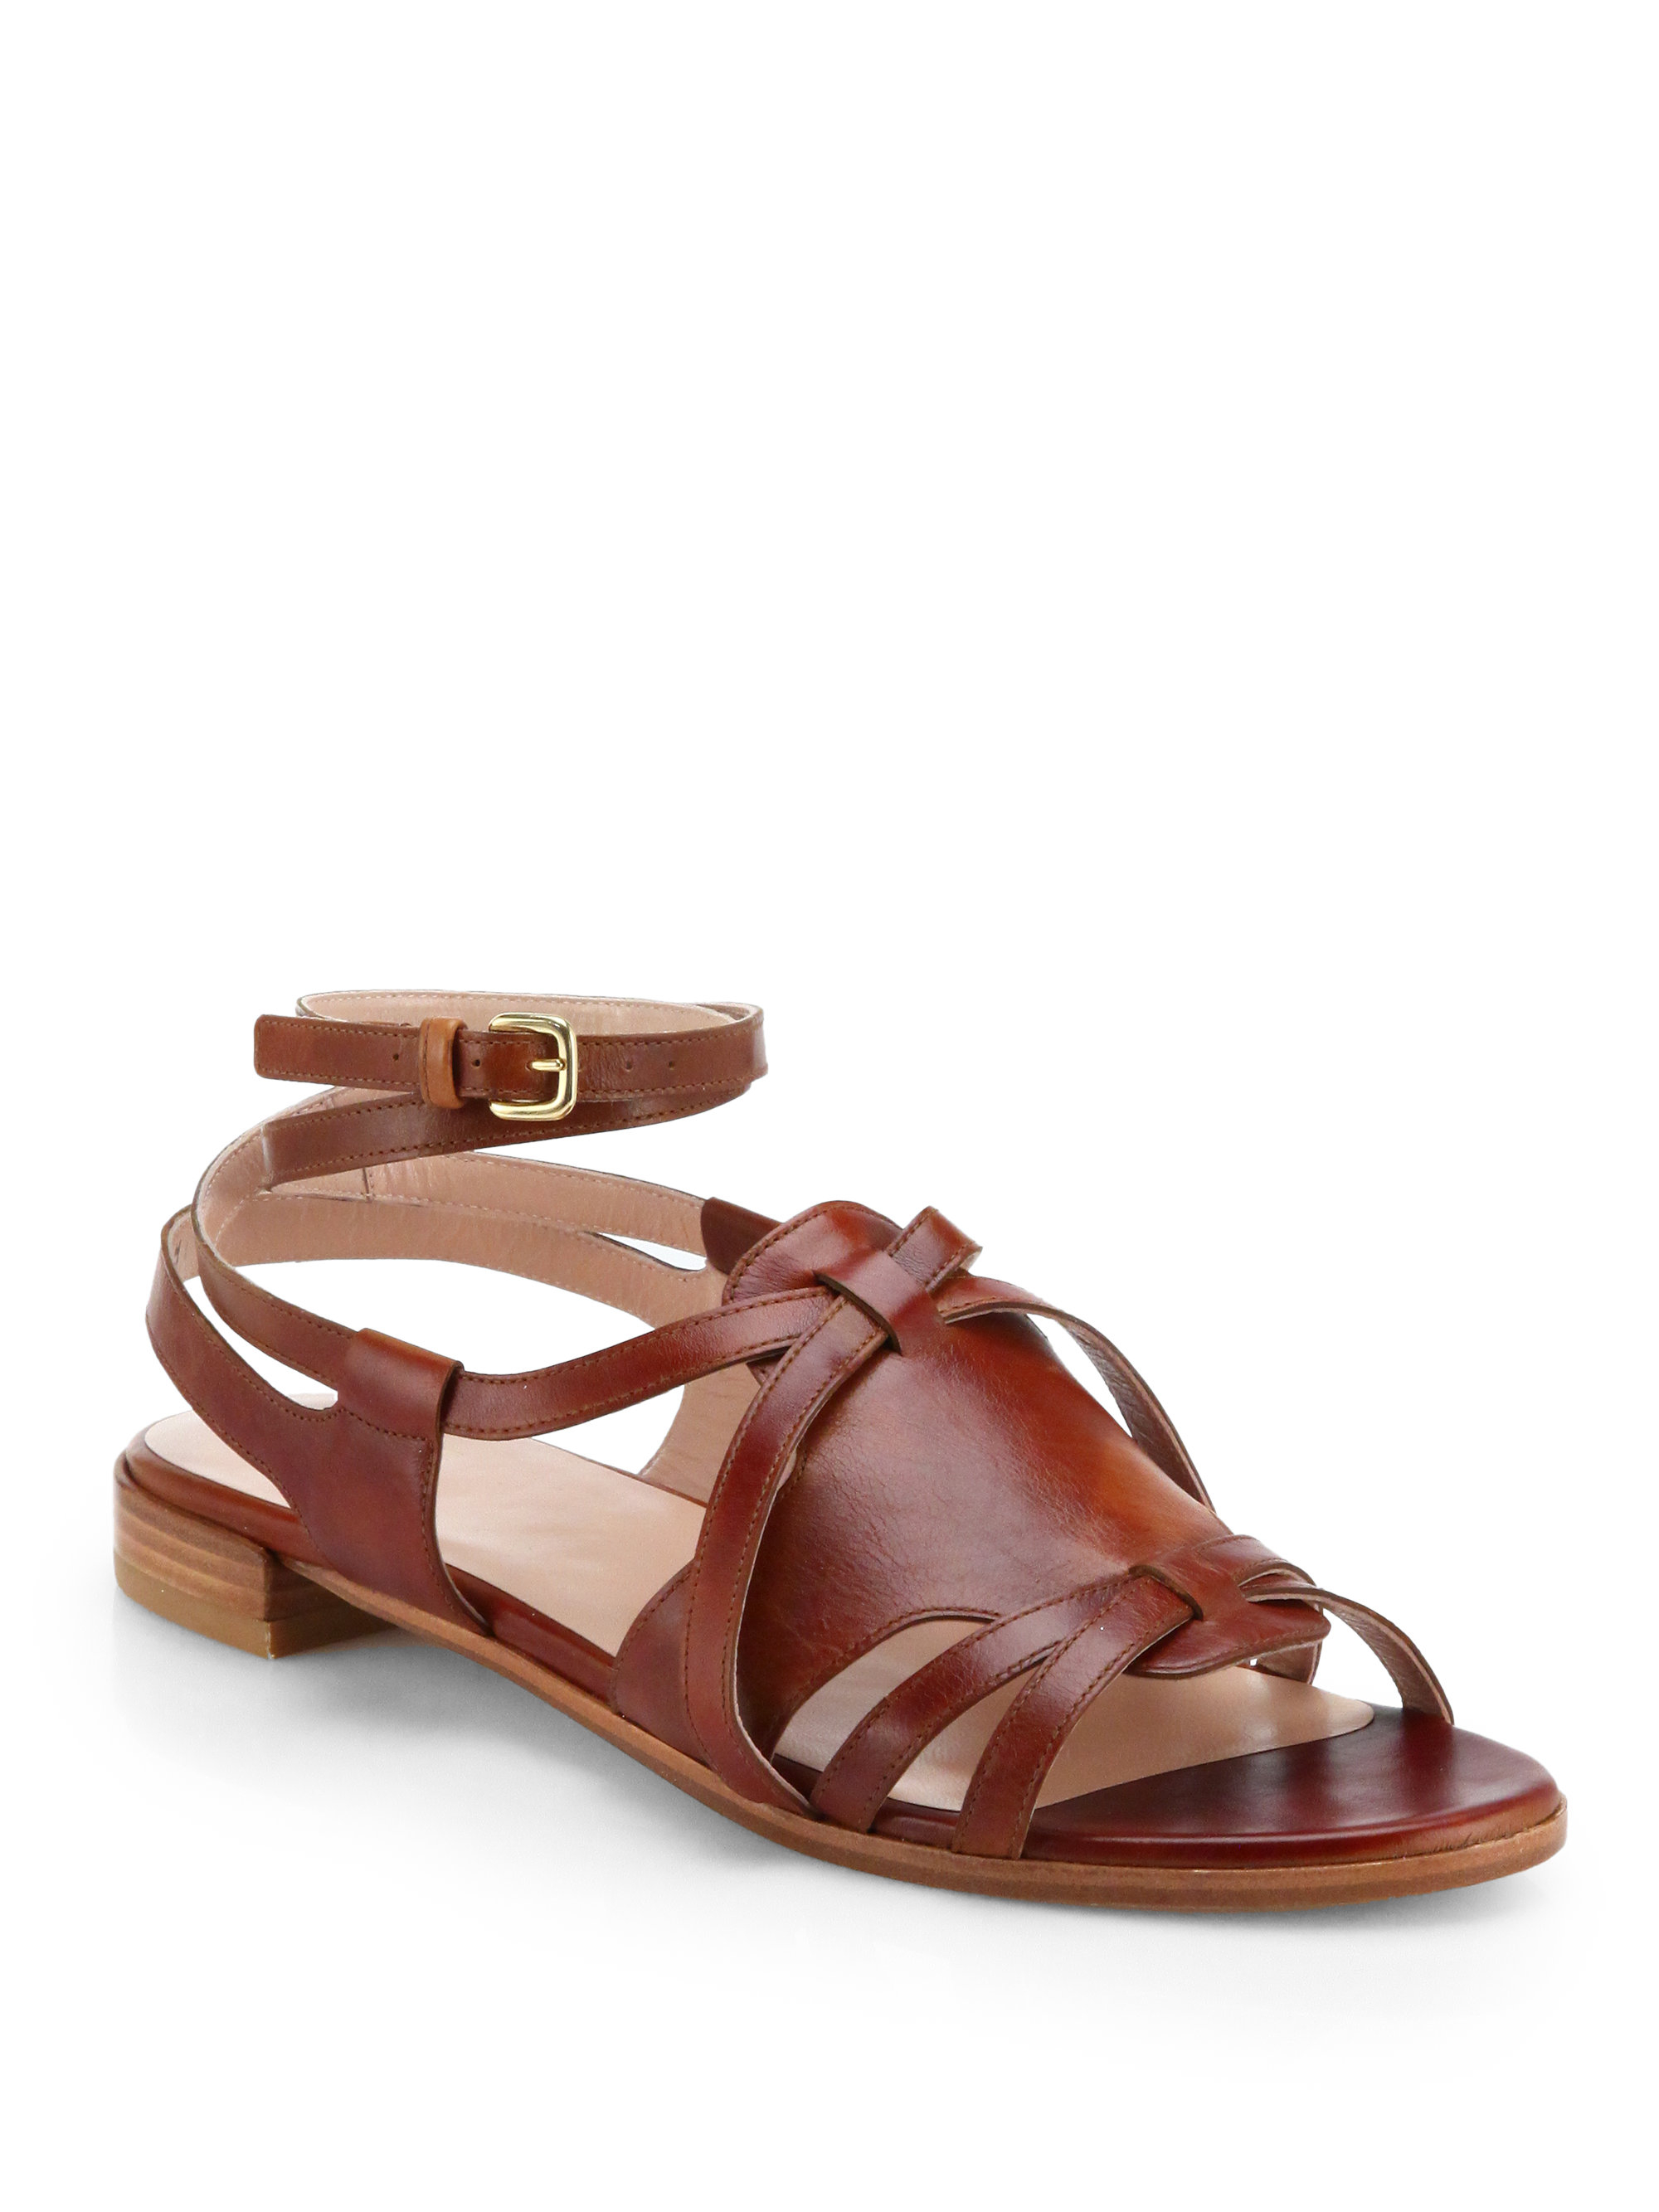 Stuart Weitzman Leather Sandals Inexpensive For Sale Best Prices Cheap Price 9bqtZiS9TS